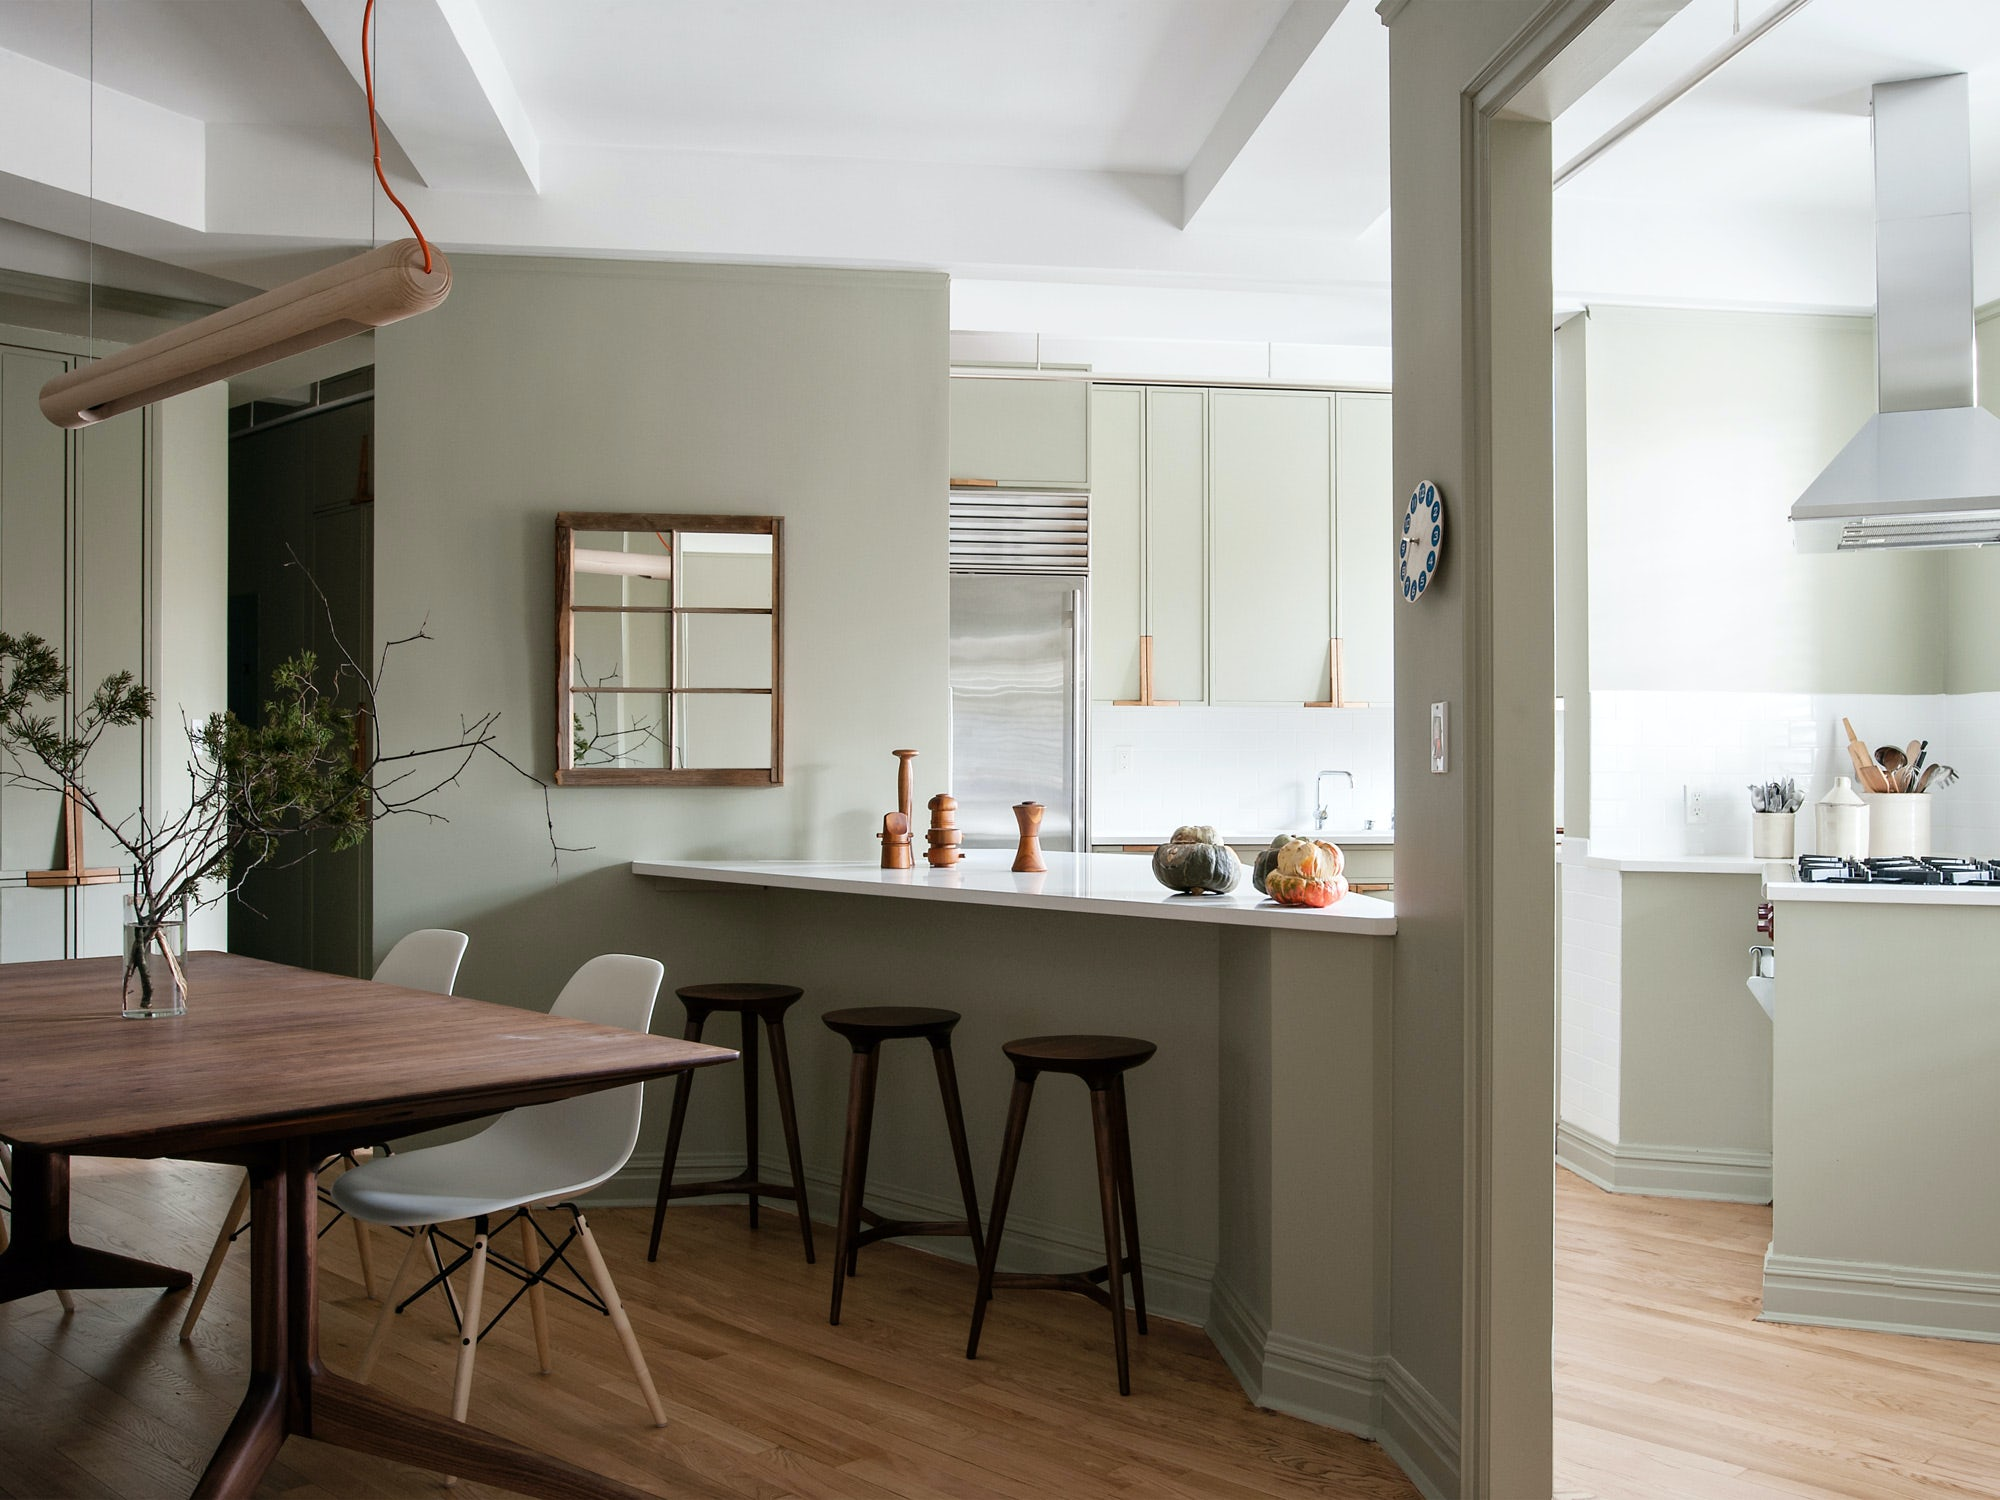 gallery image for Park Slope Apartment